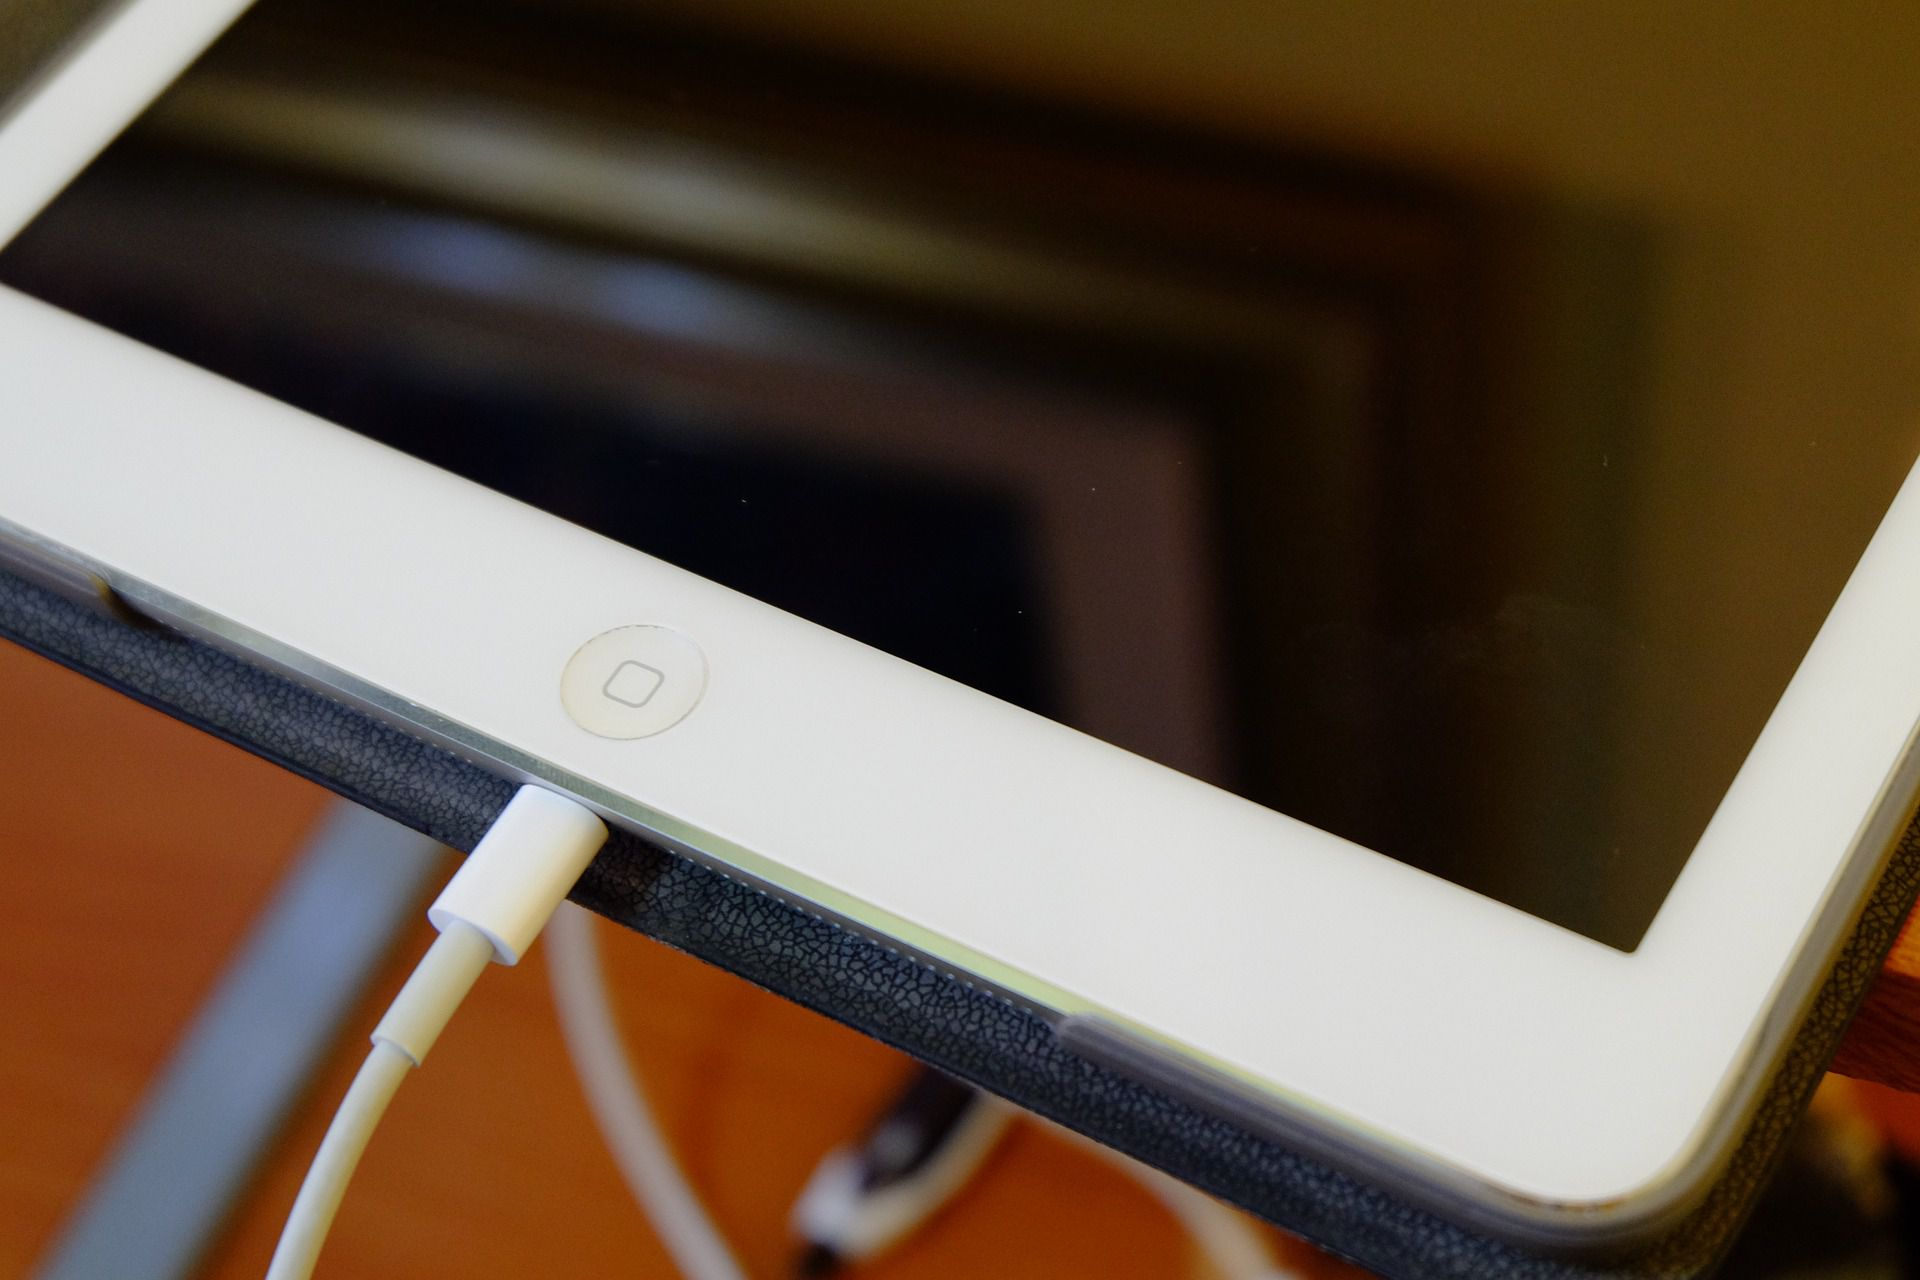 How to Fix an iPad That Won't Charge or Charges Slowly